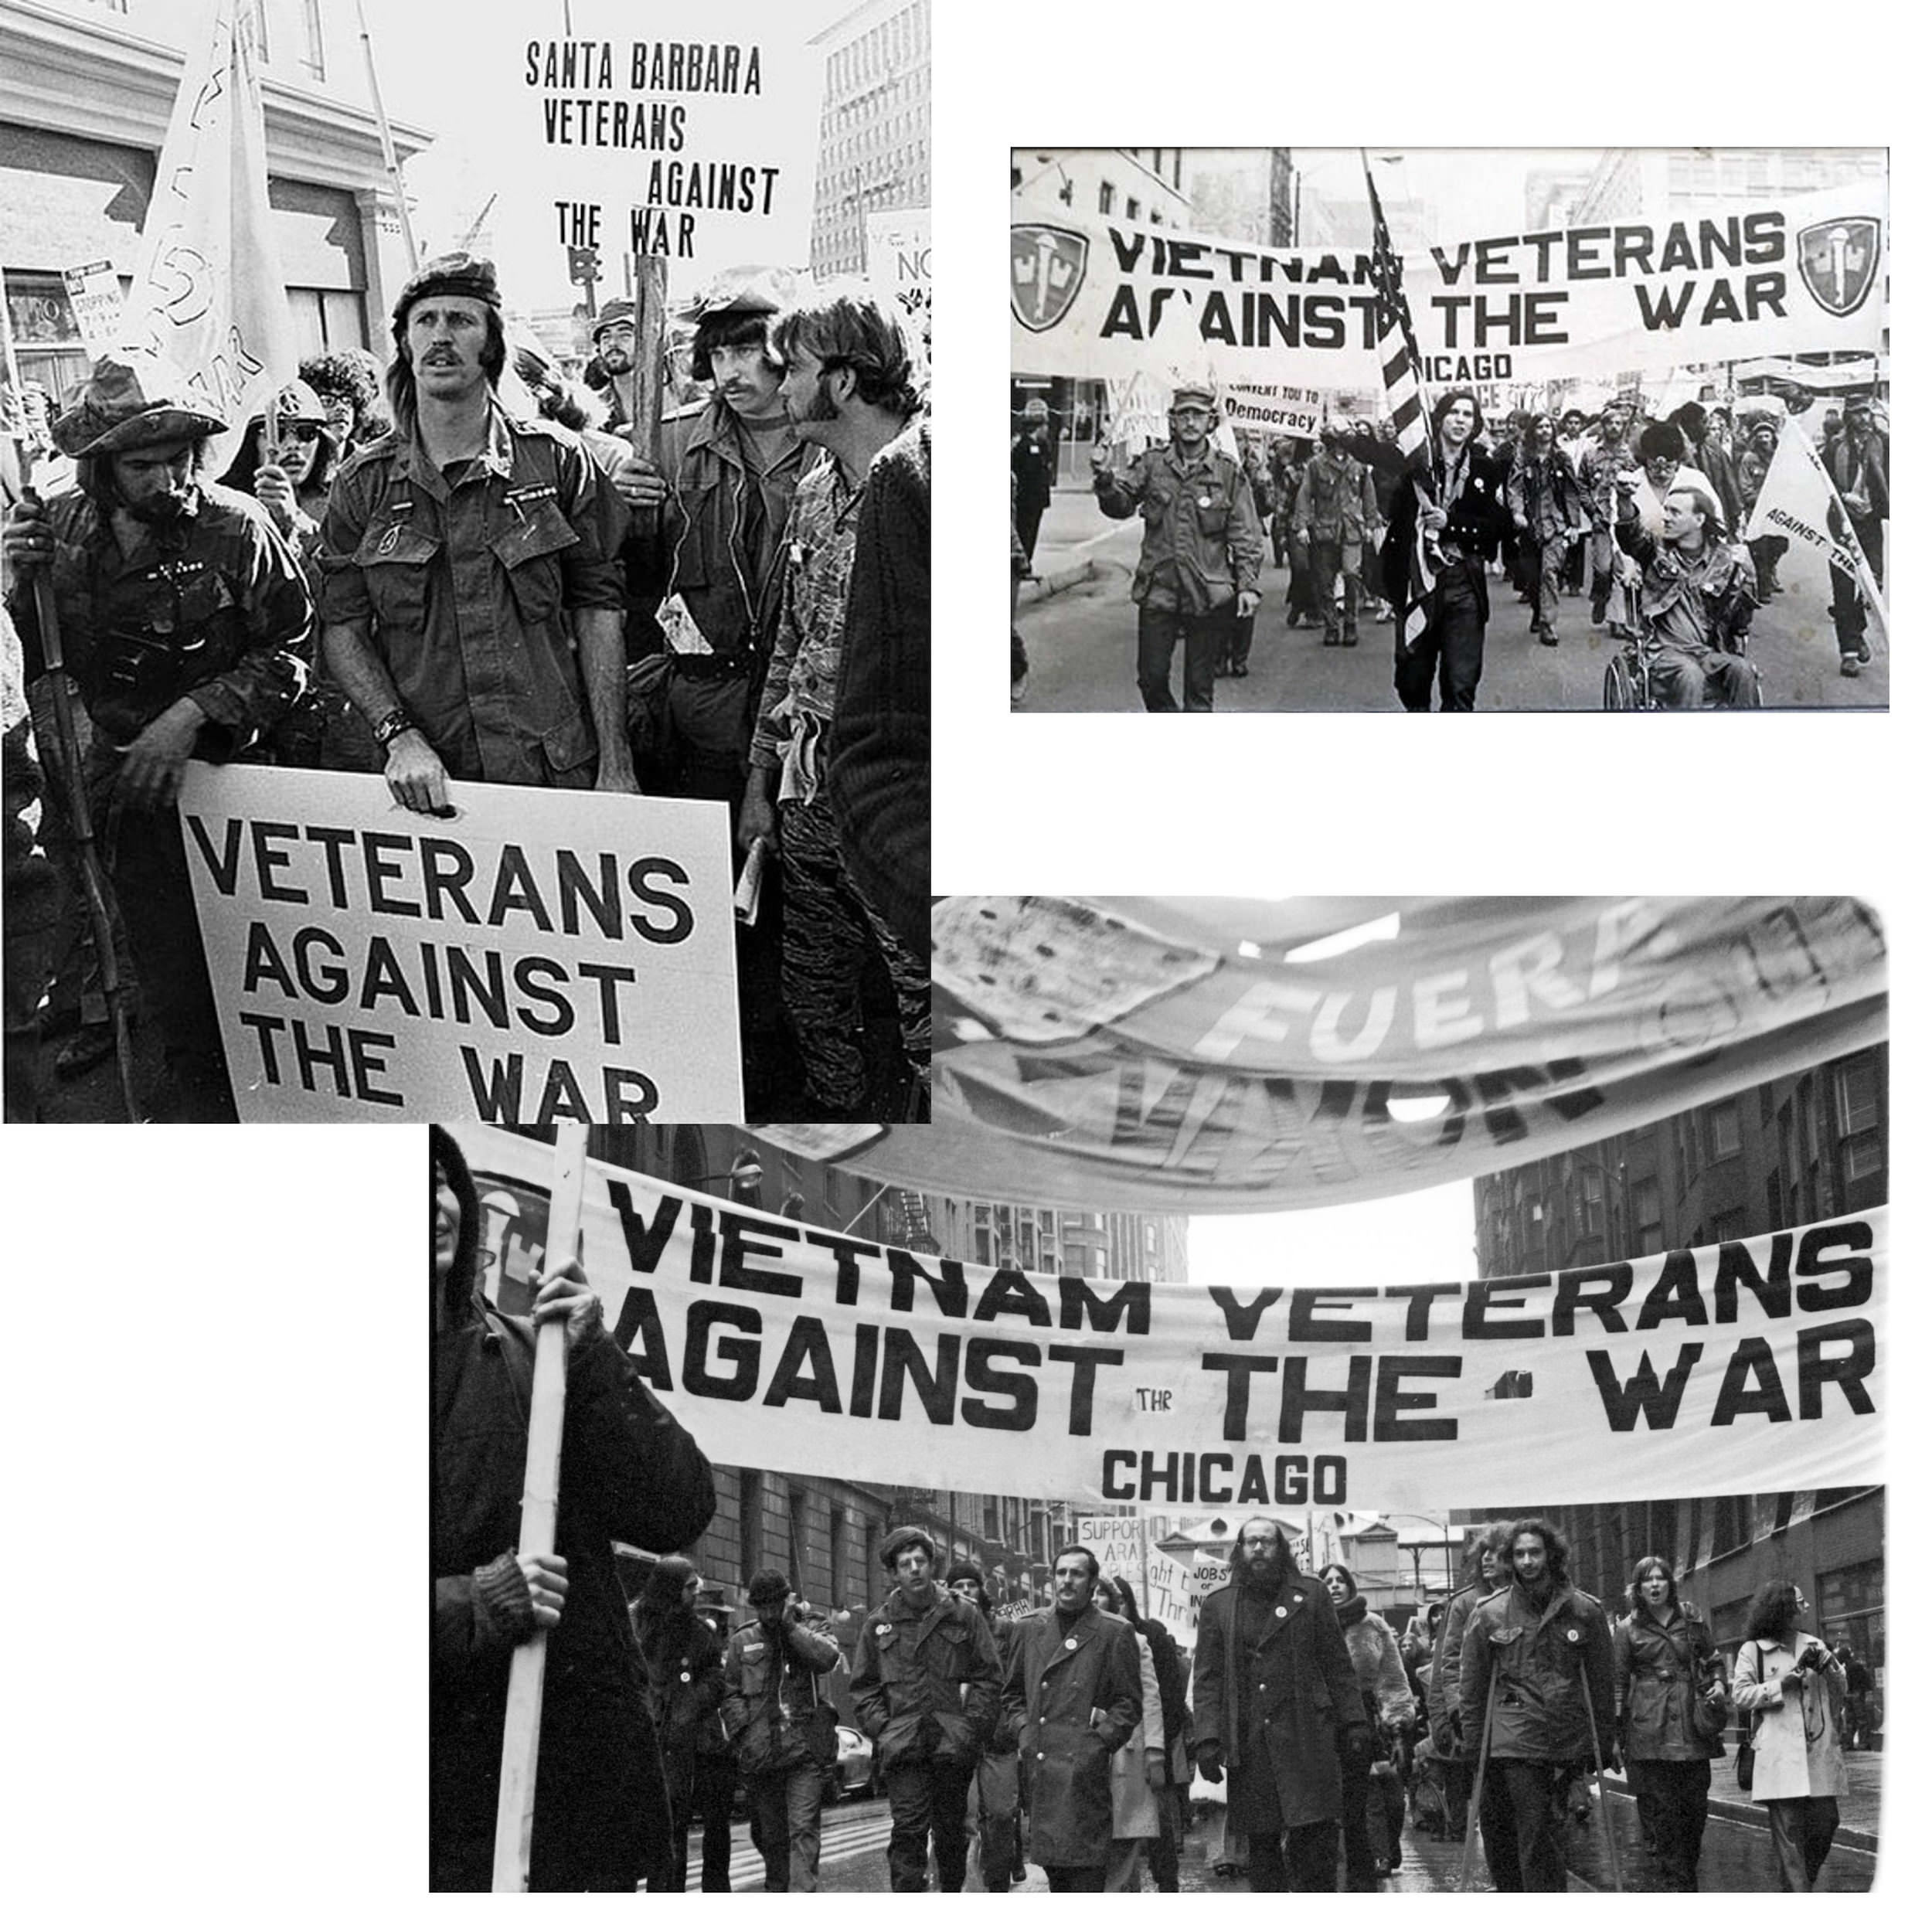 vietnam s veterans againt the war